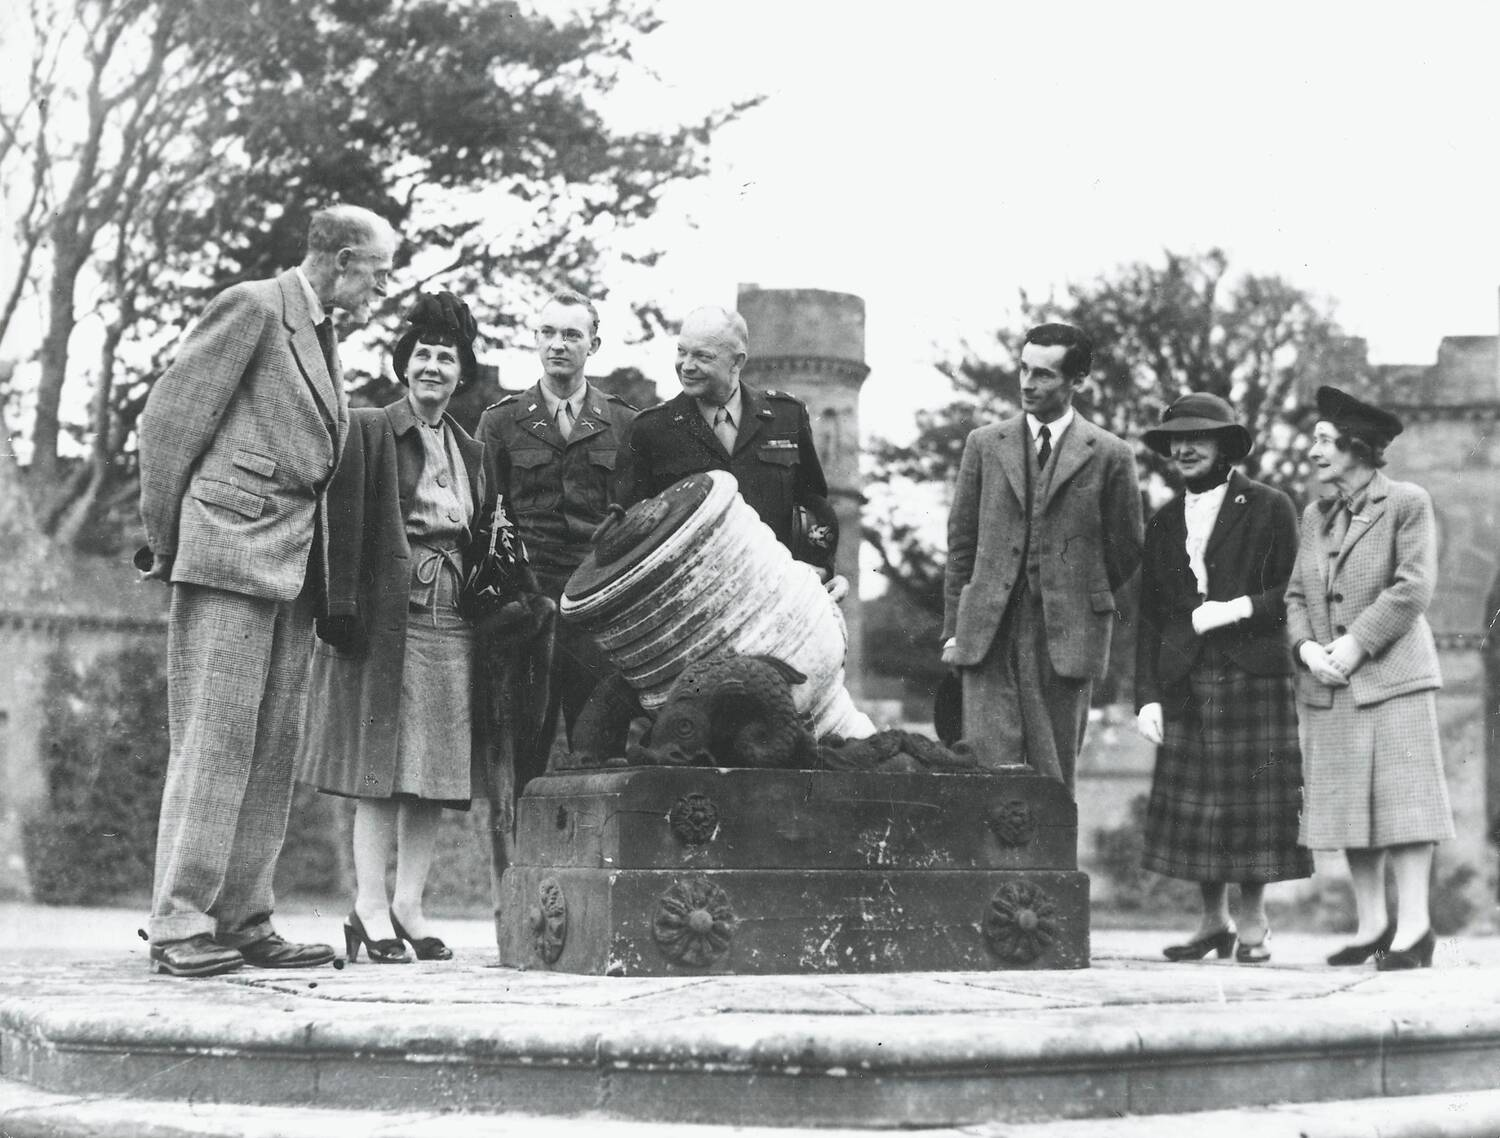 A black and white photograph of a group of people standing around a large cannon at a castle.